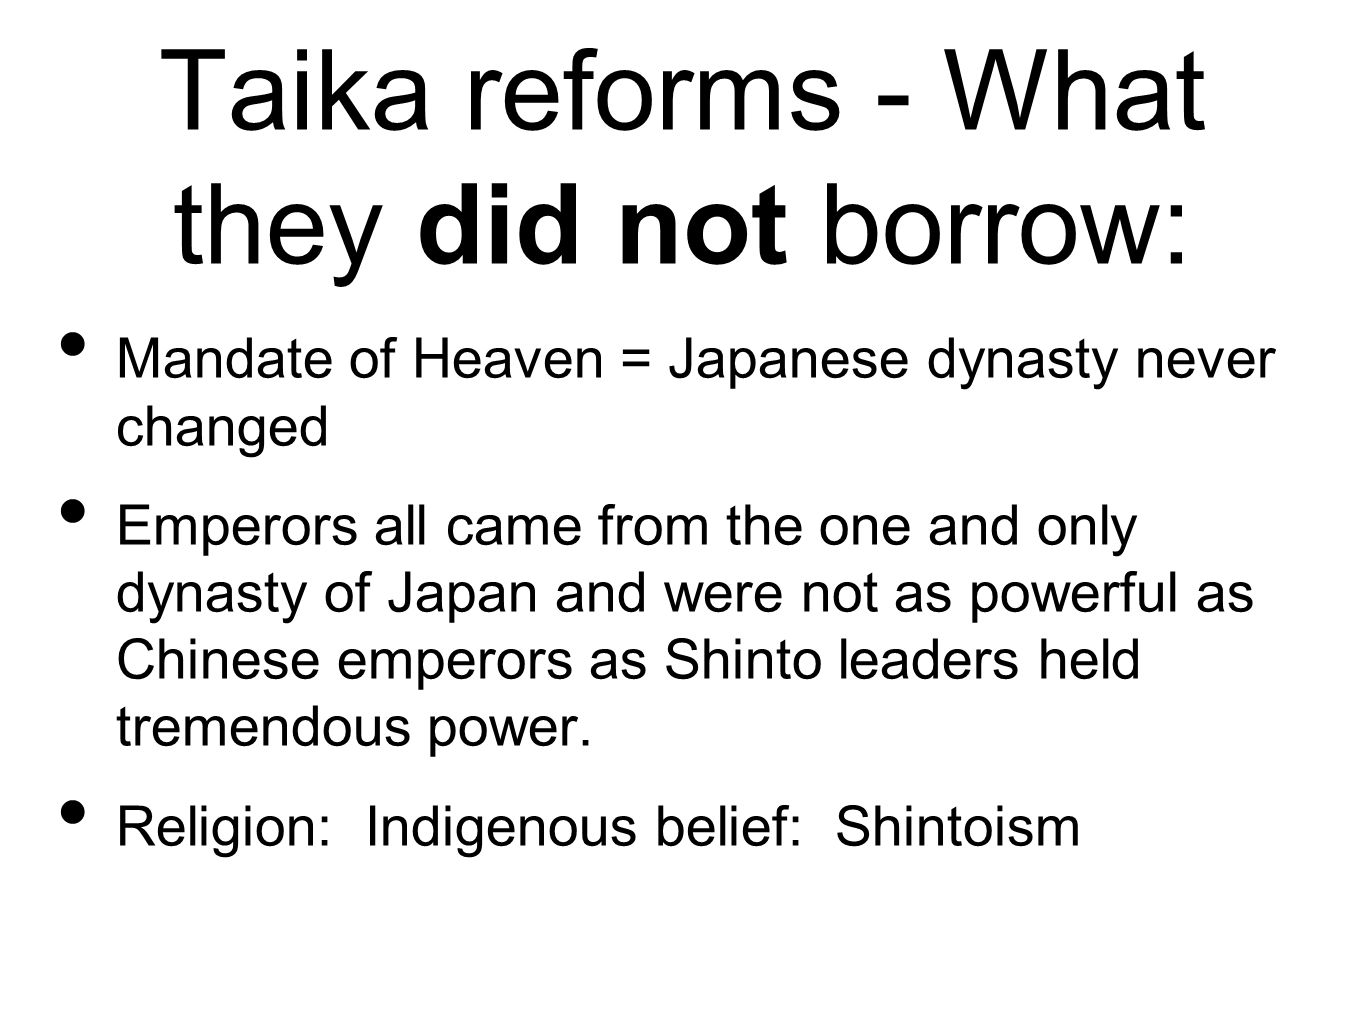 Taika reforms - What they did not borrow: Mandate of Heaven = Japanese dynasty never changed Emperors all came from the one and only dynasty of Japan and were not as powerful as Chinese emperors as Shinto leaders held tremendous power.